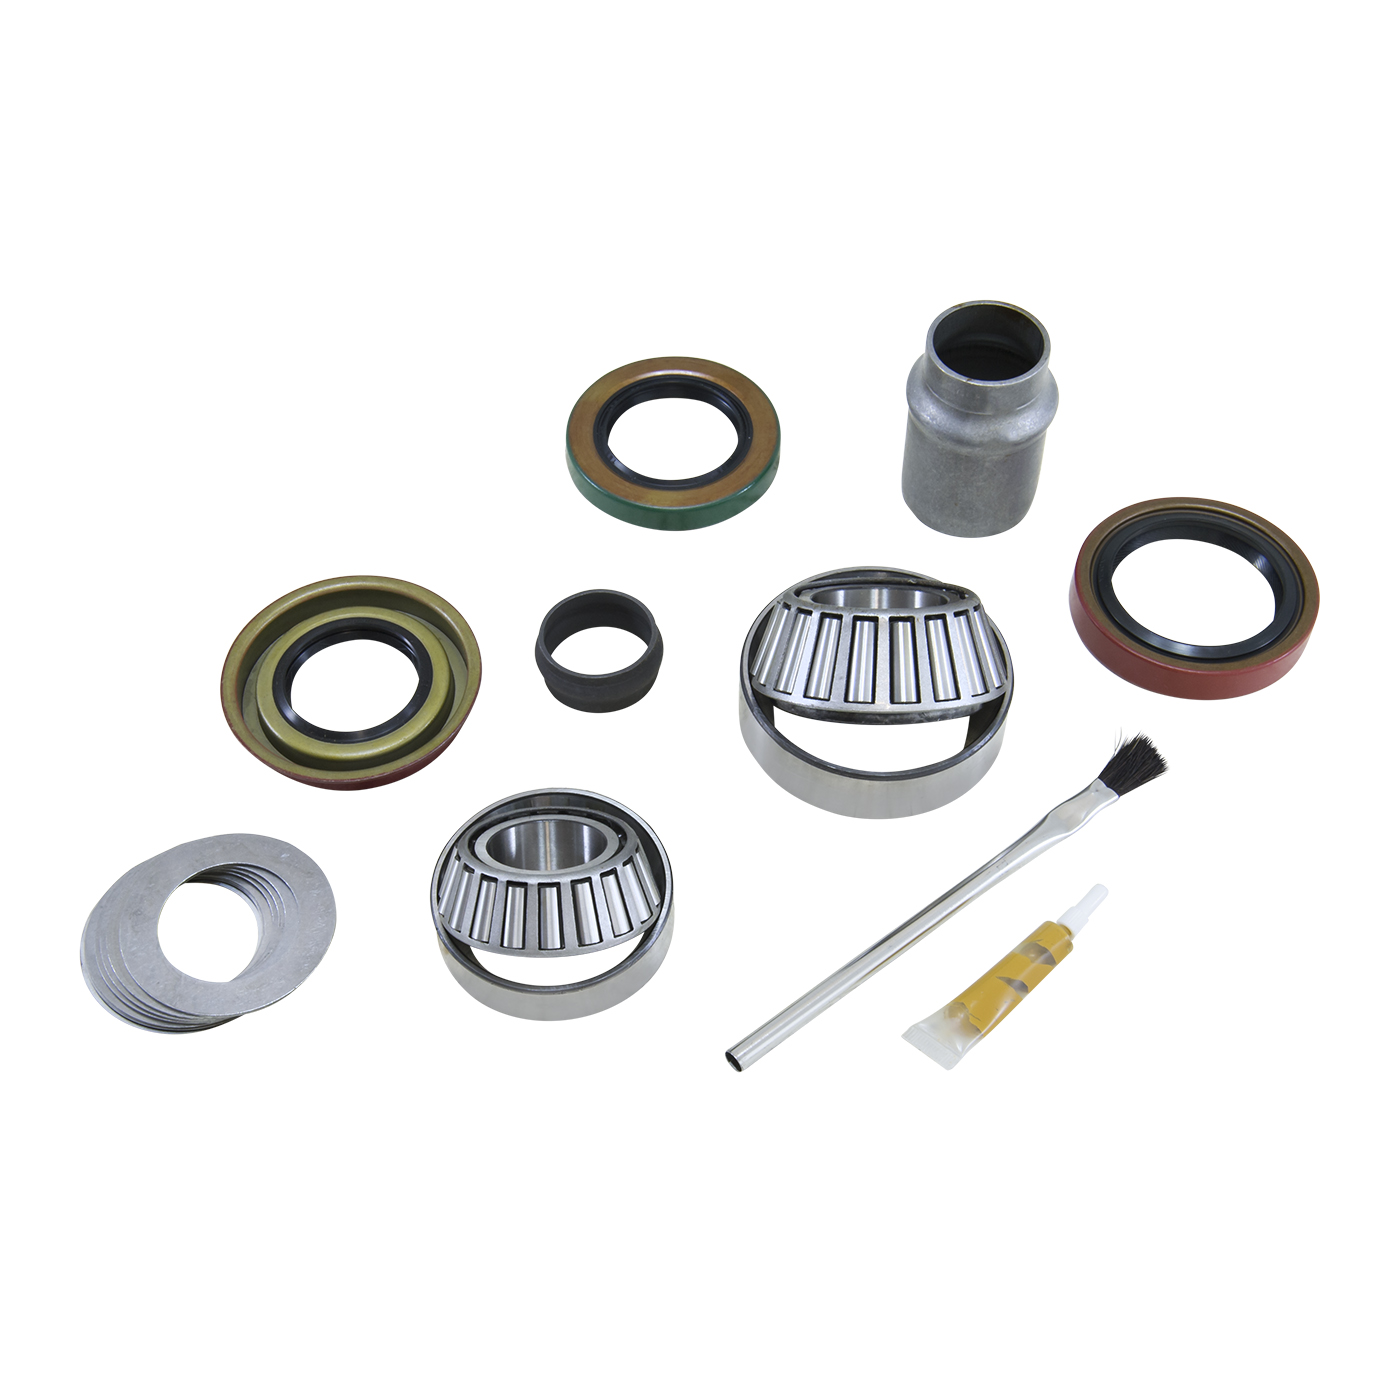 PK GM8.2BOP - Yukon Pinion install kit for GM 8.2